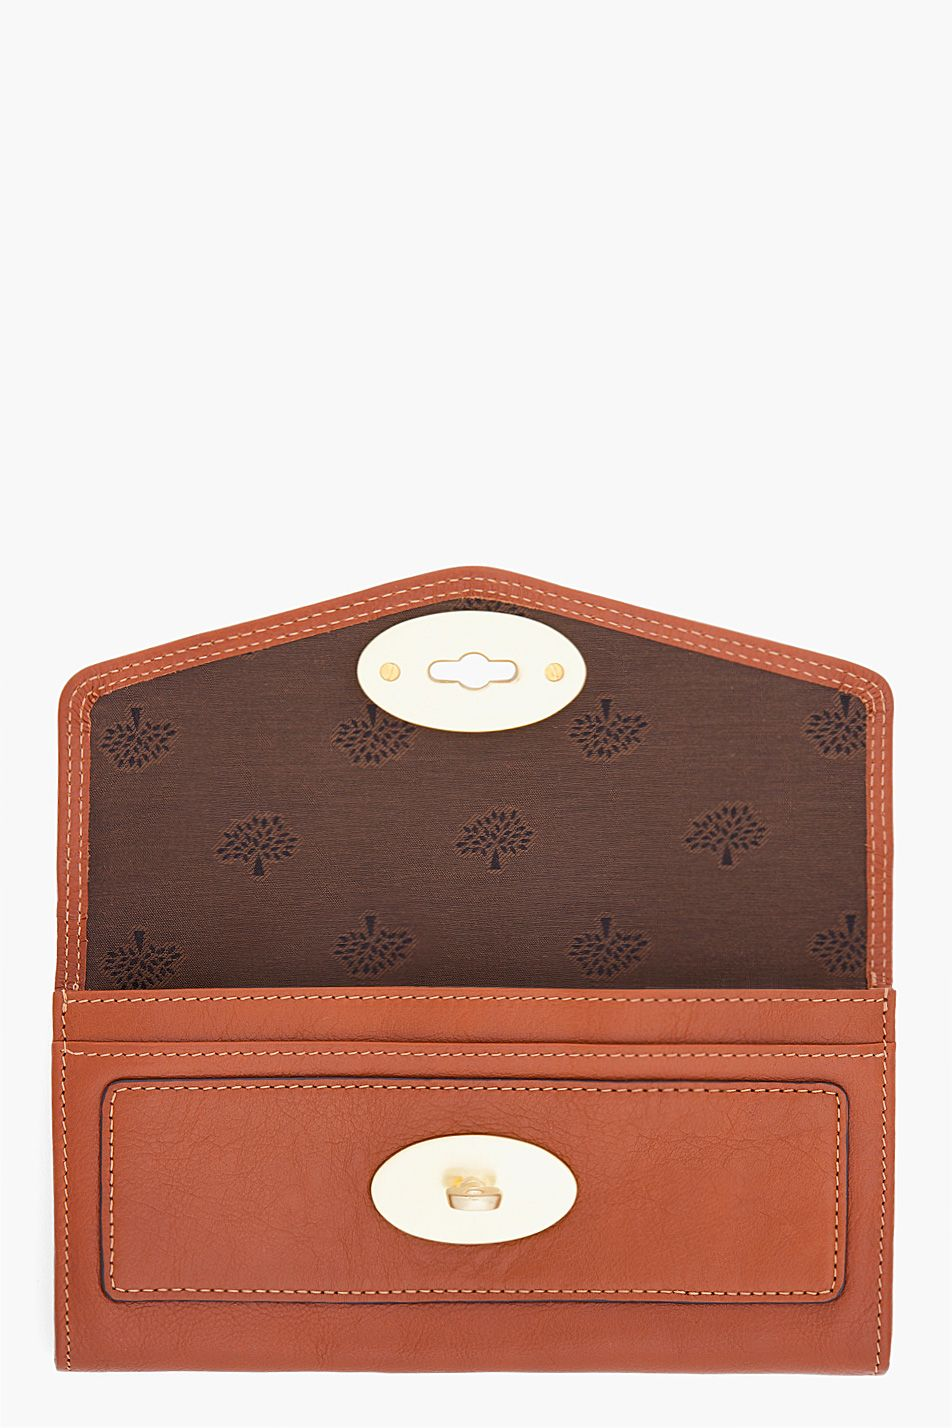 MULBERRY Postmans Lock Continental Wallet Soft Buffalo   Carry ... 81ef01c76a